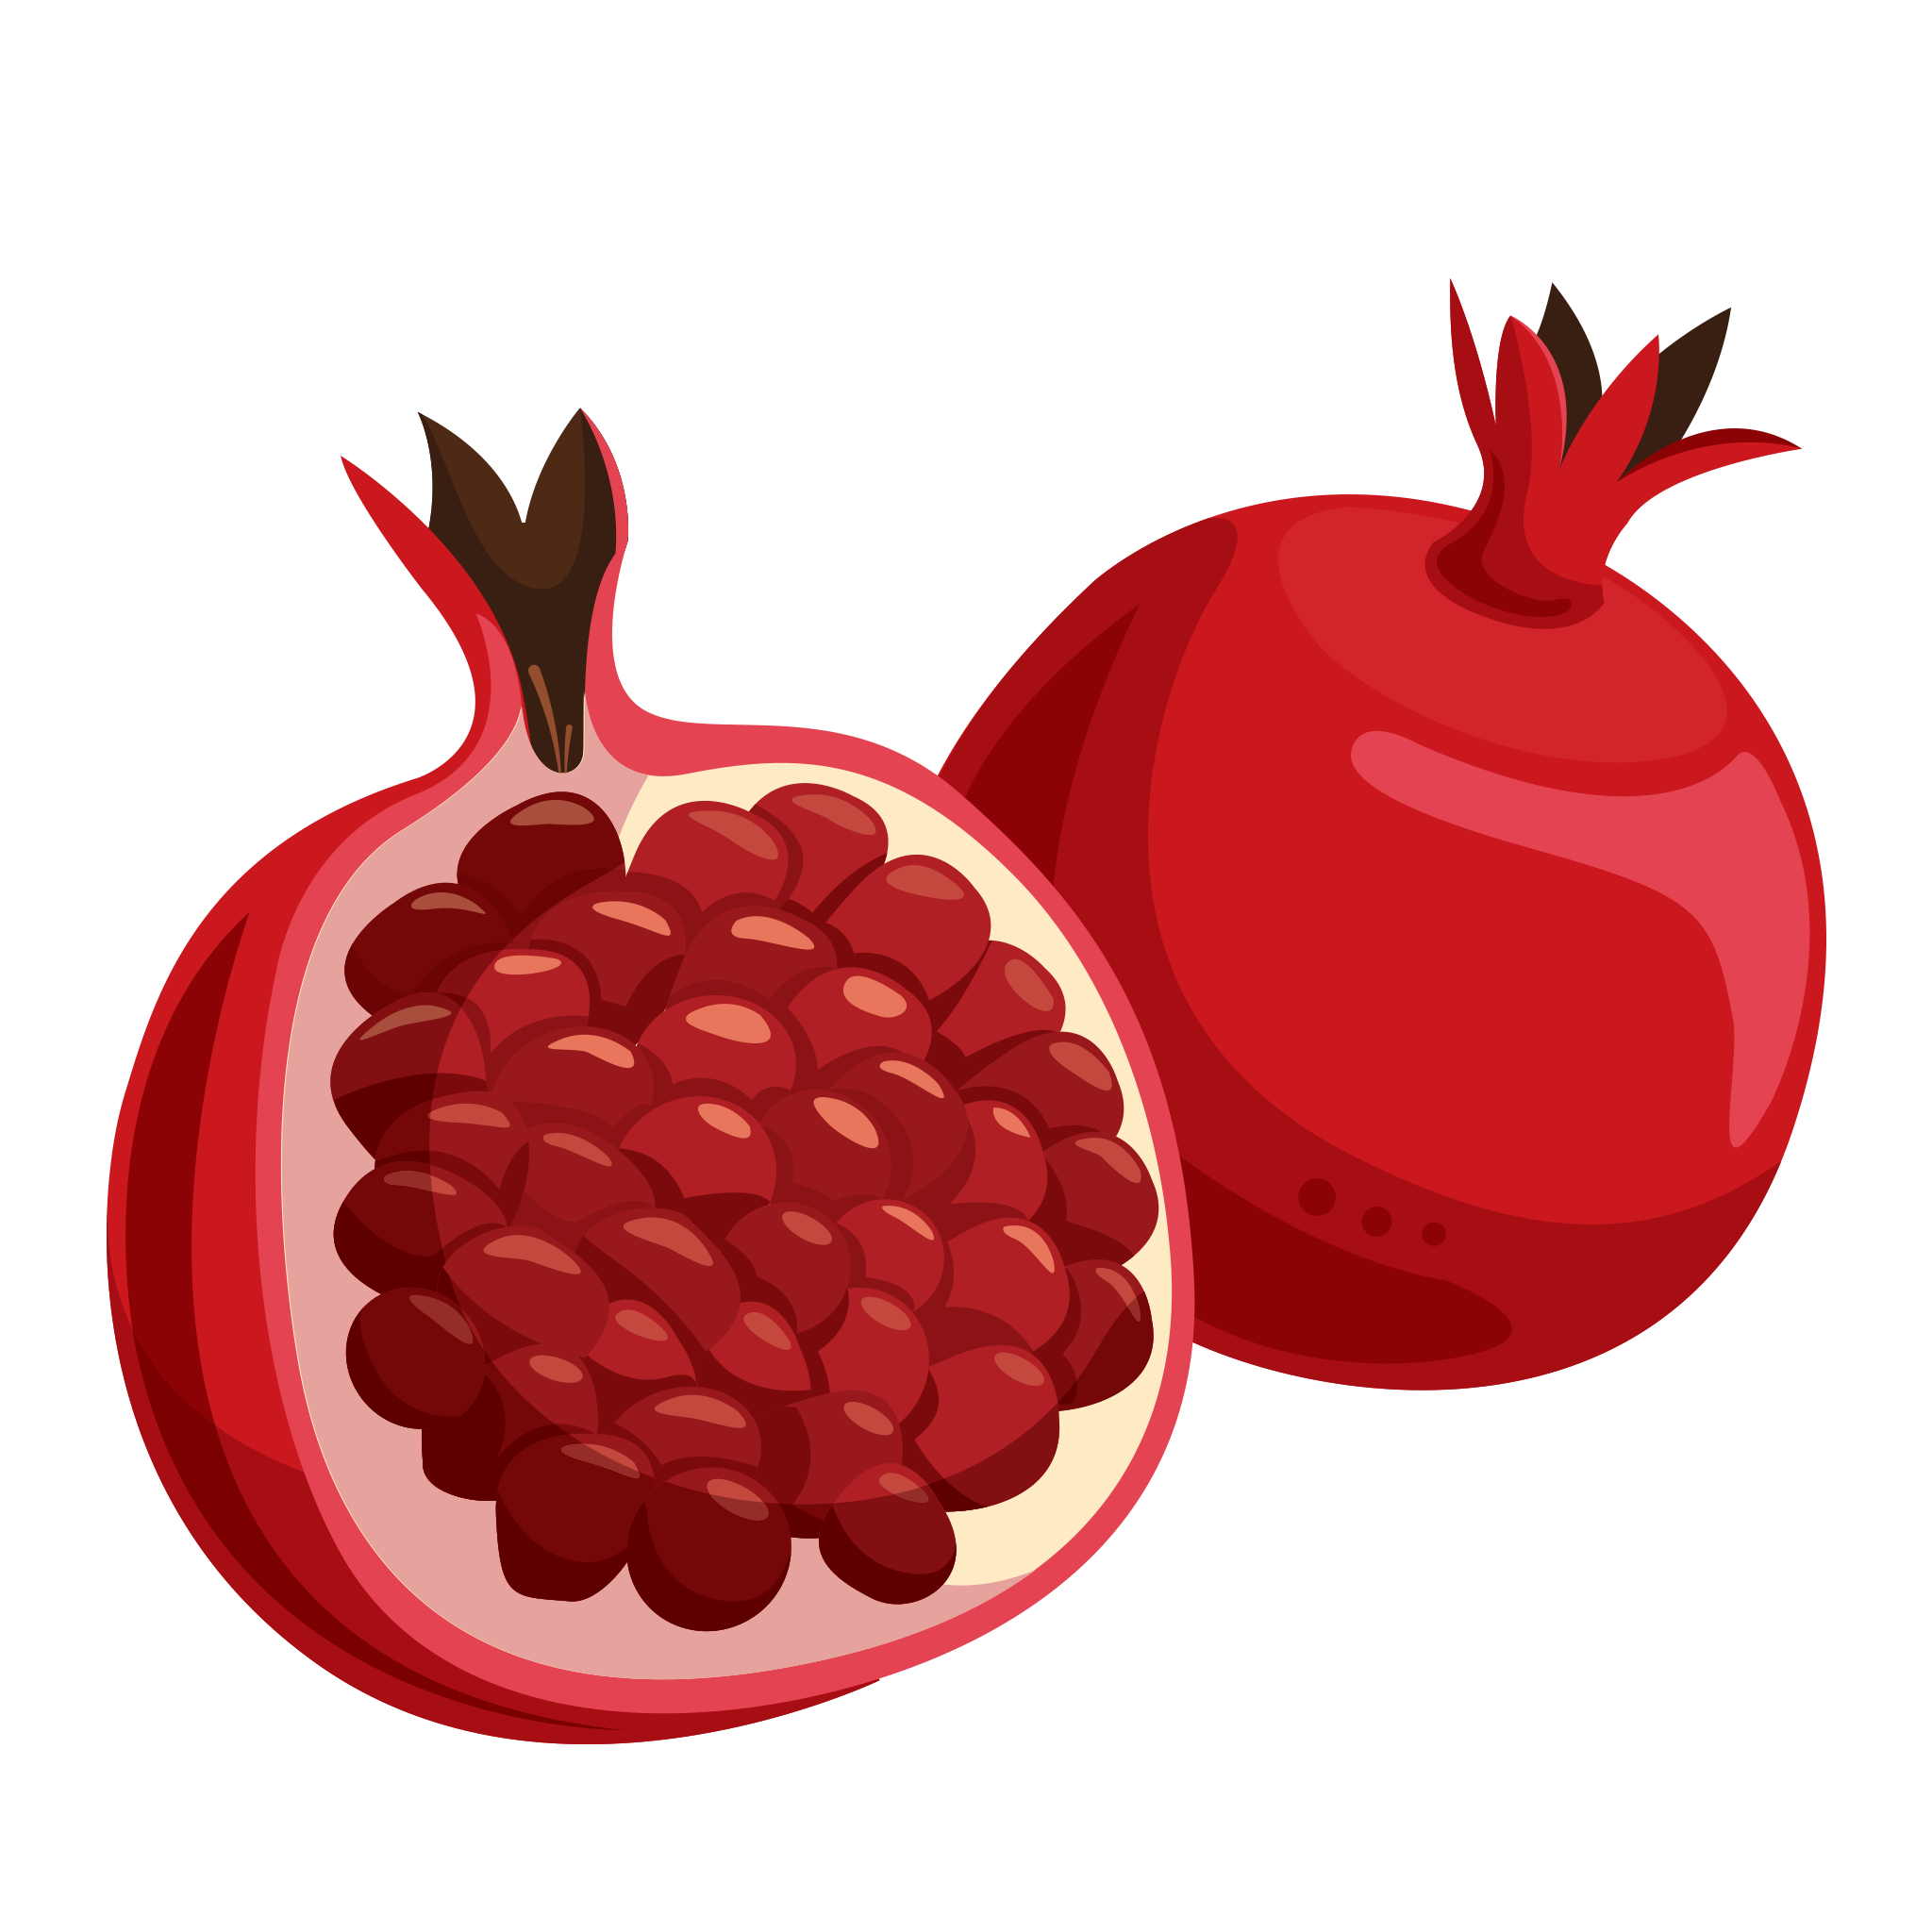 Pomegranate clipart fruts. Fruit png hd image